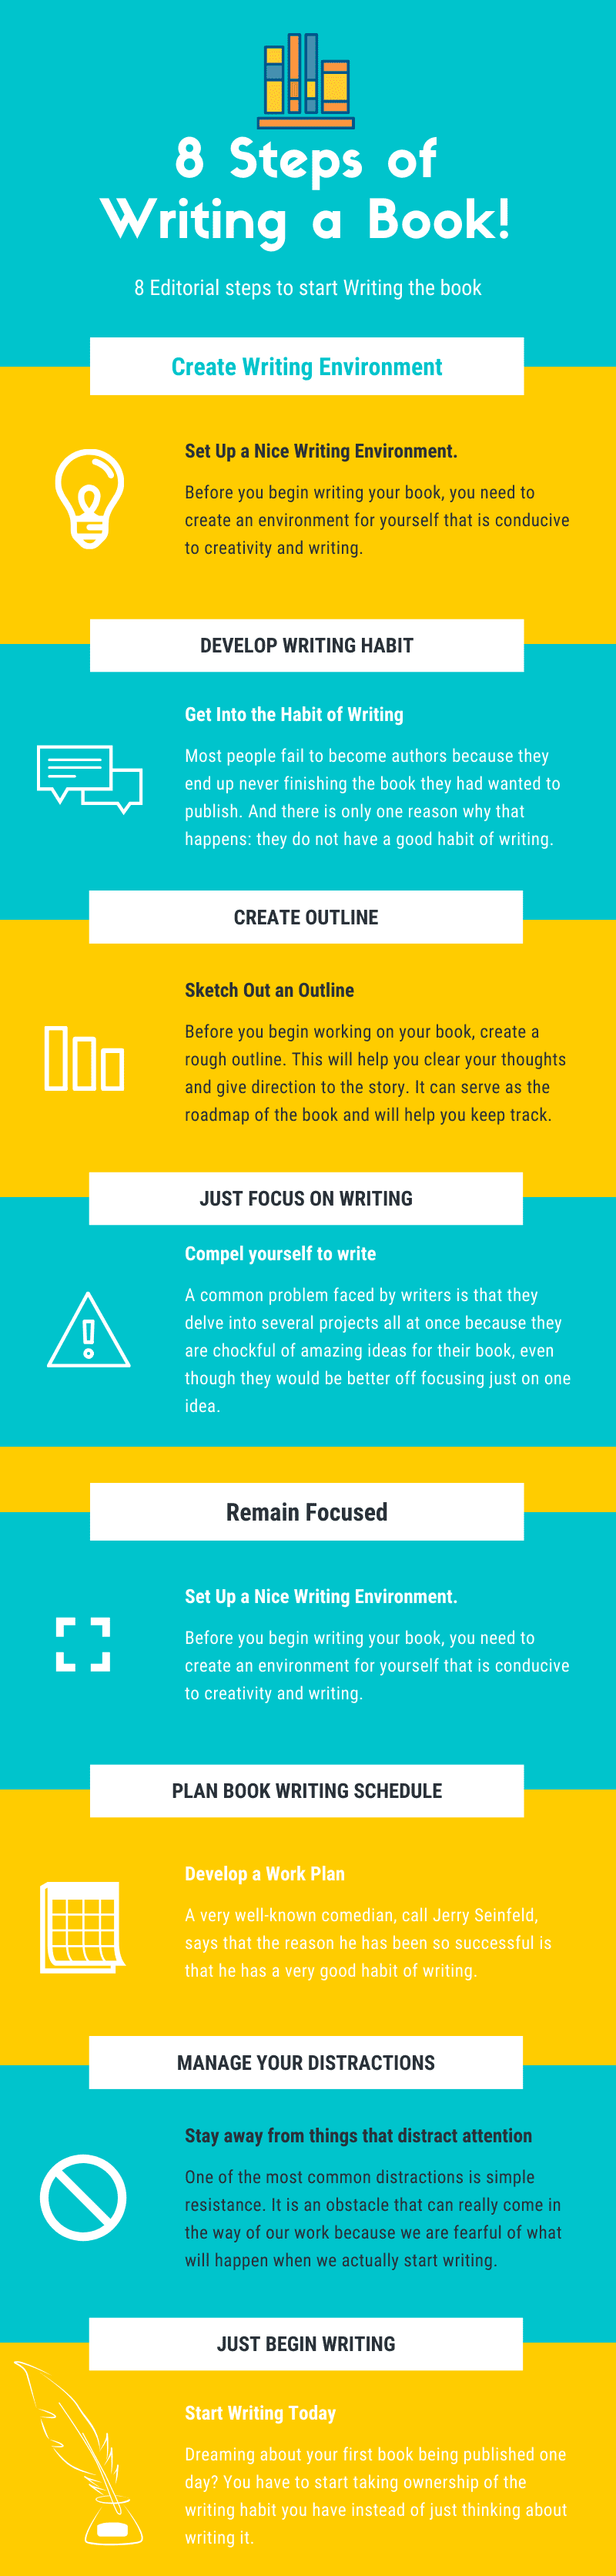 8 Steps to Start Writing a Book - Editorial Guide to Write the book